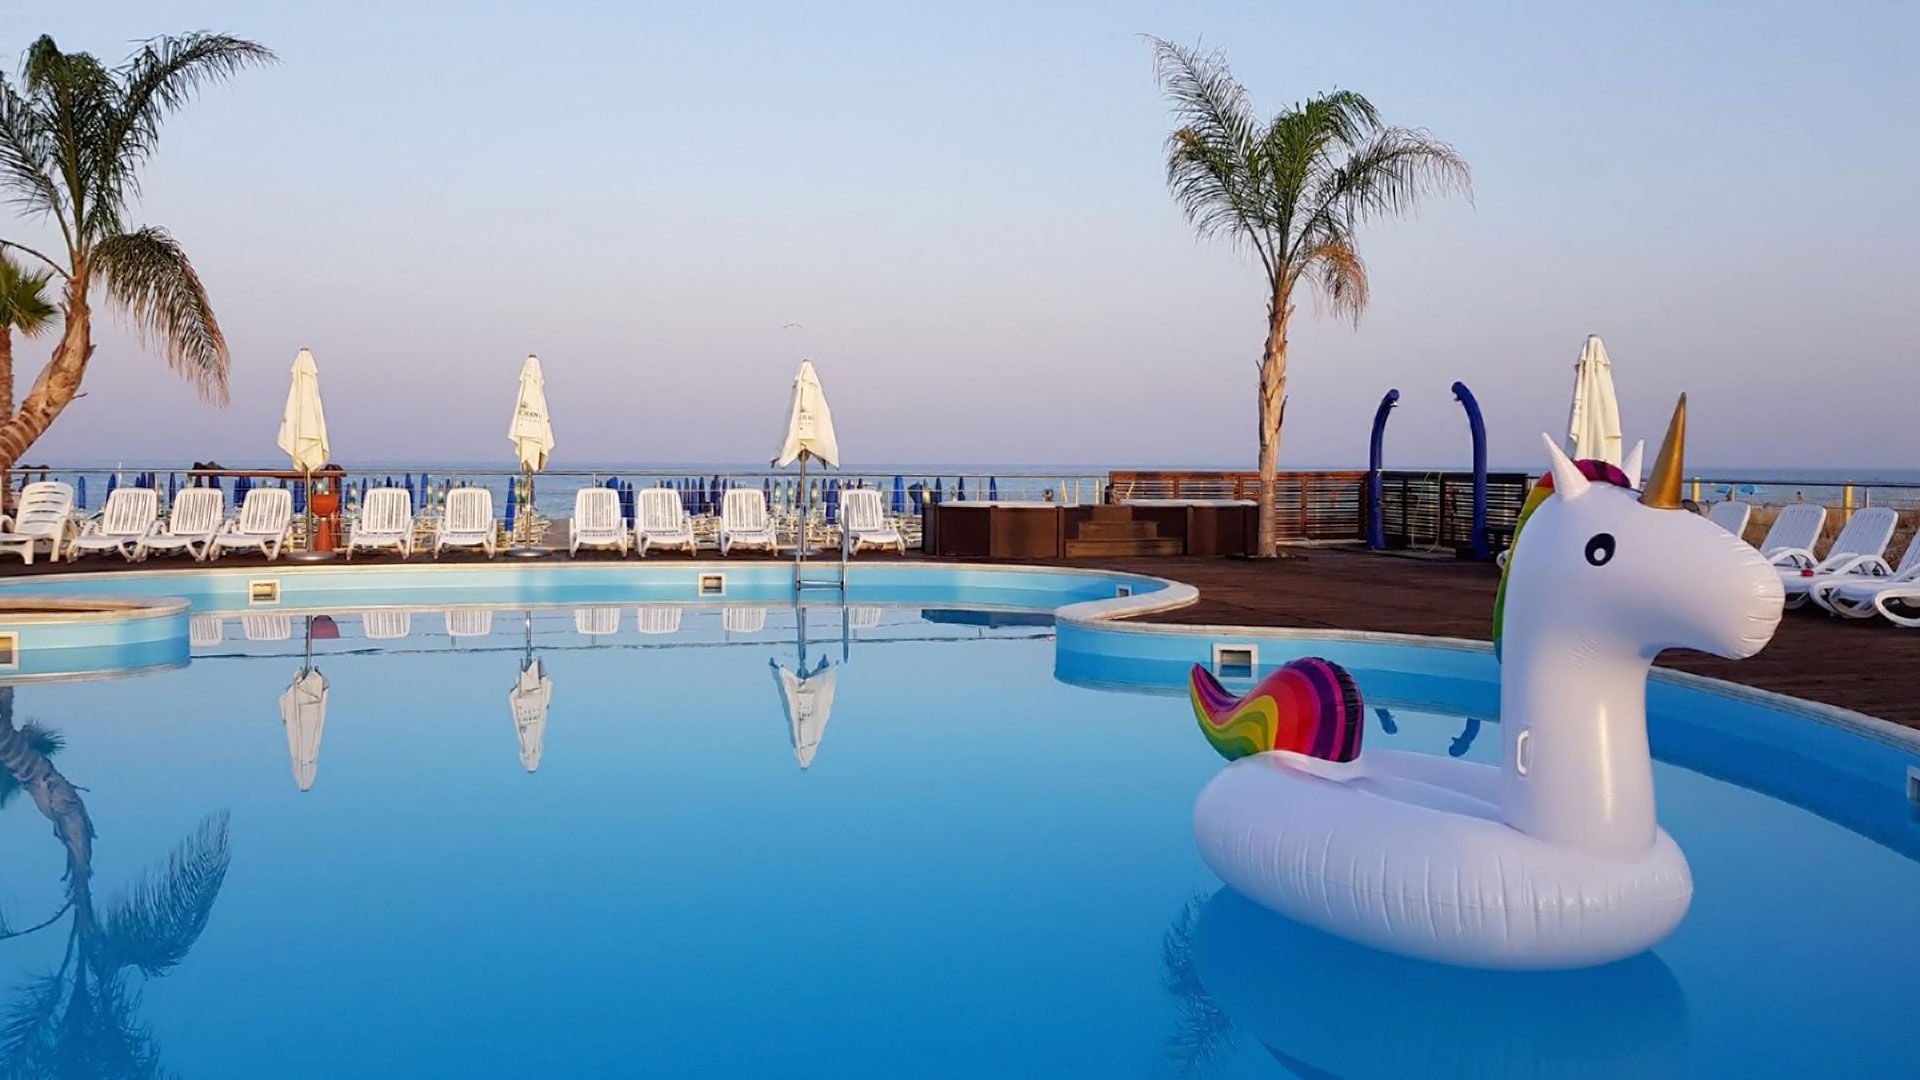 Lido Sabbia d'Oro Beach Club